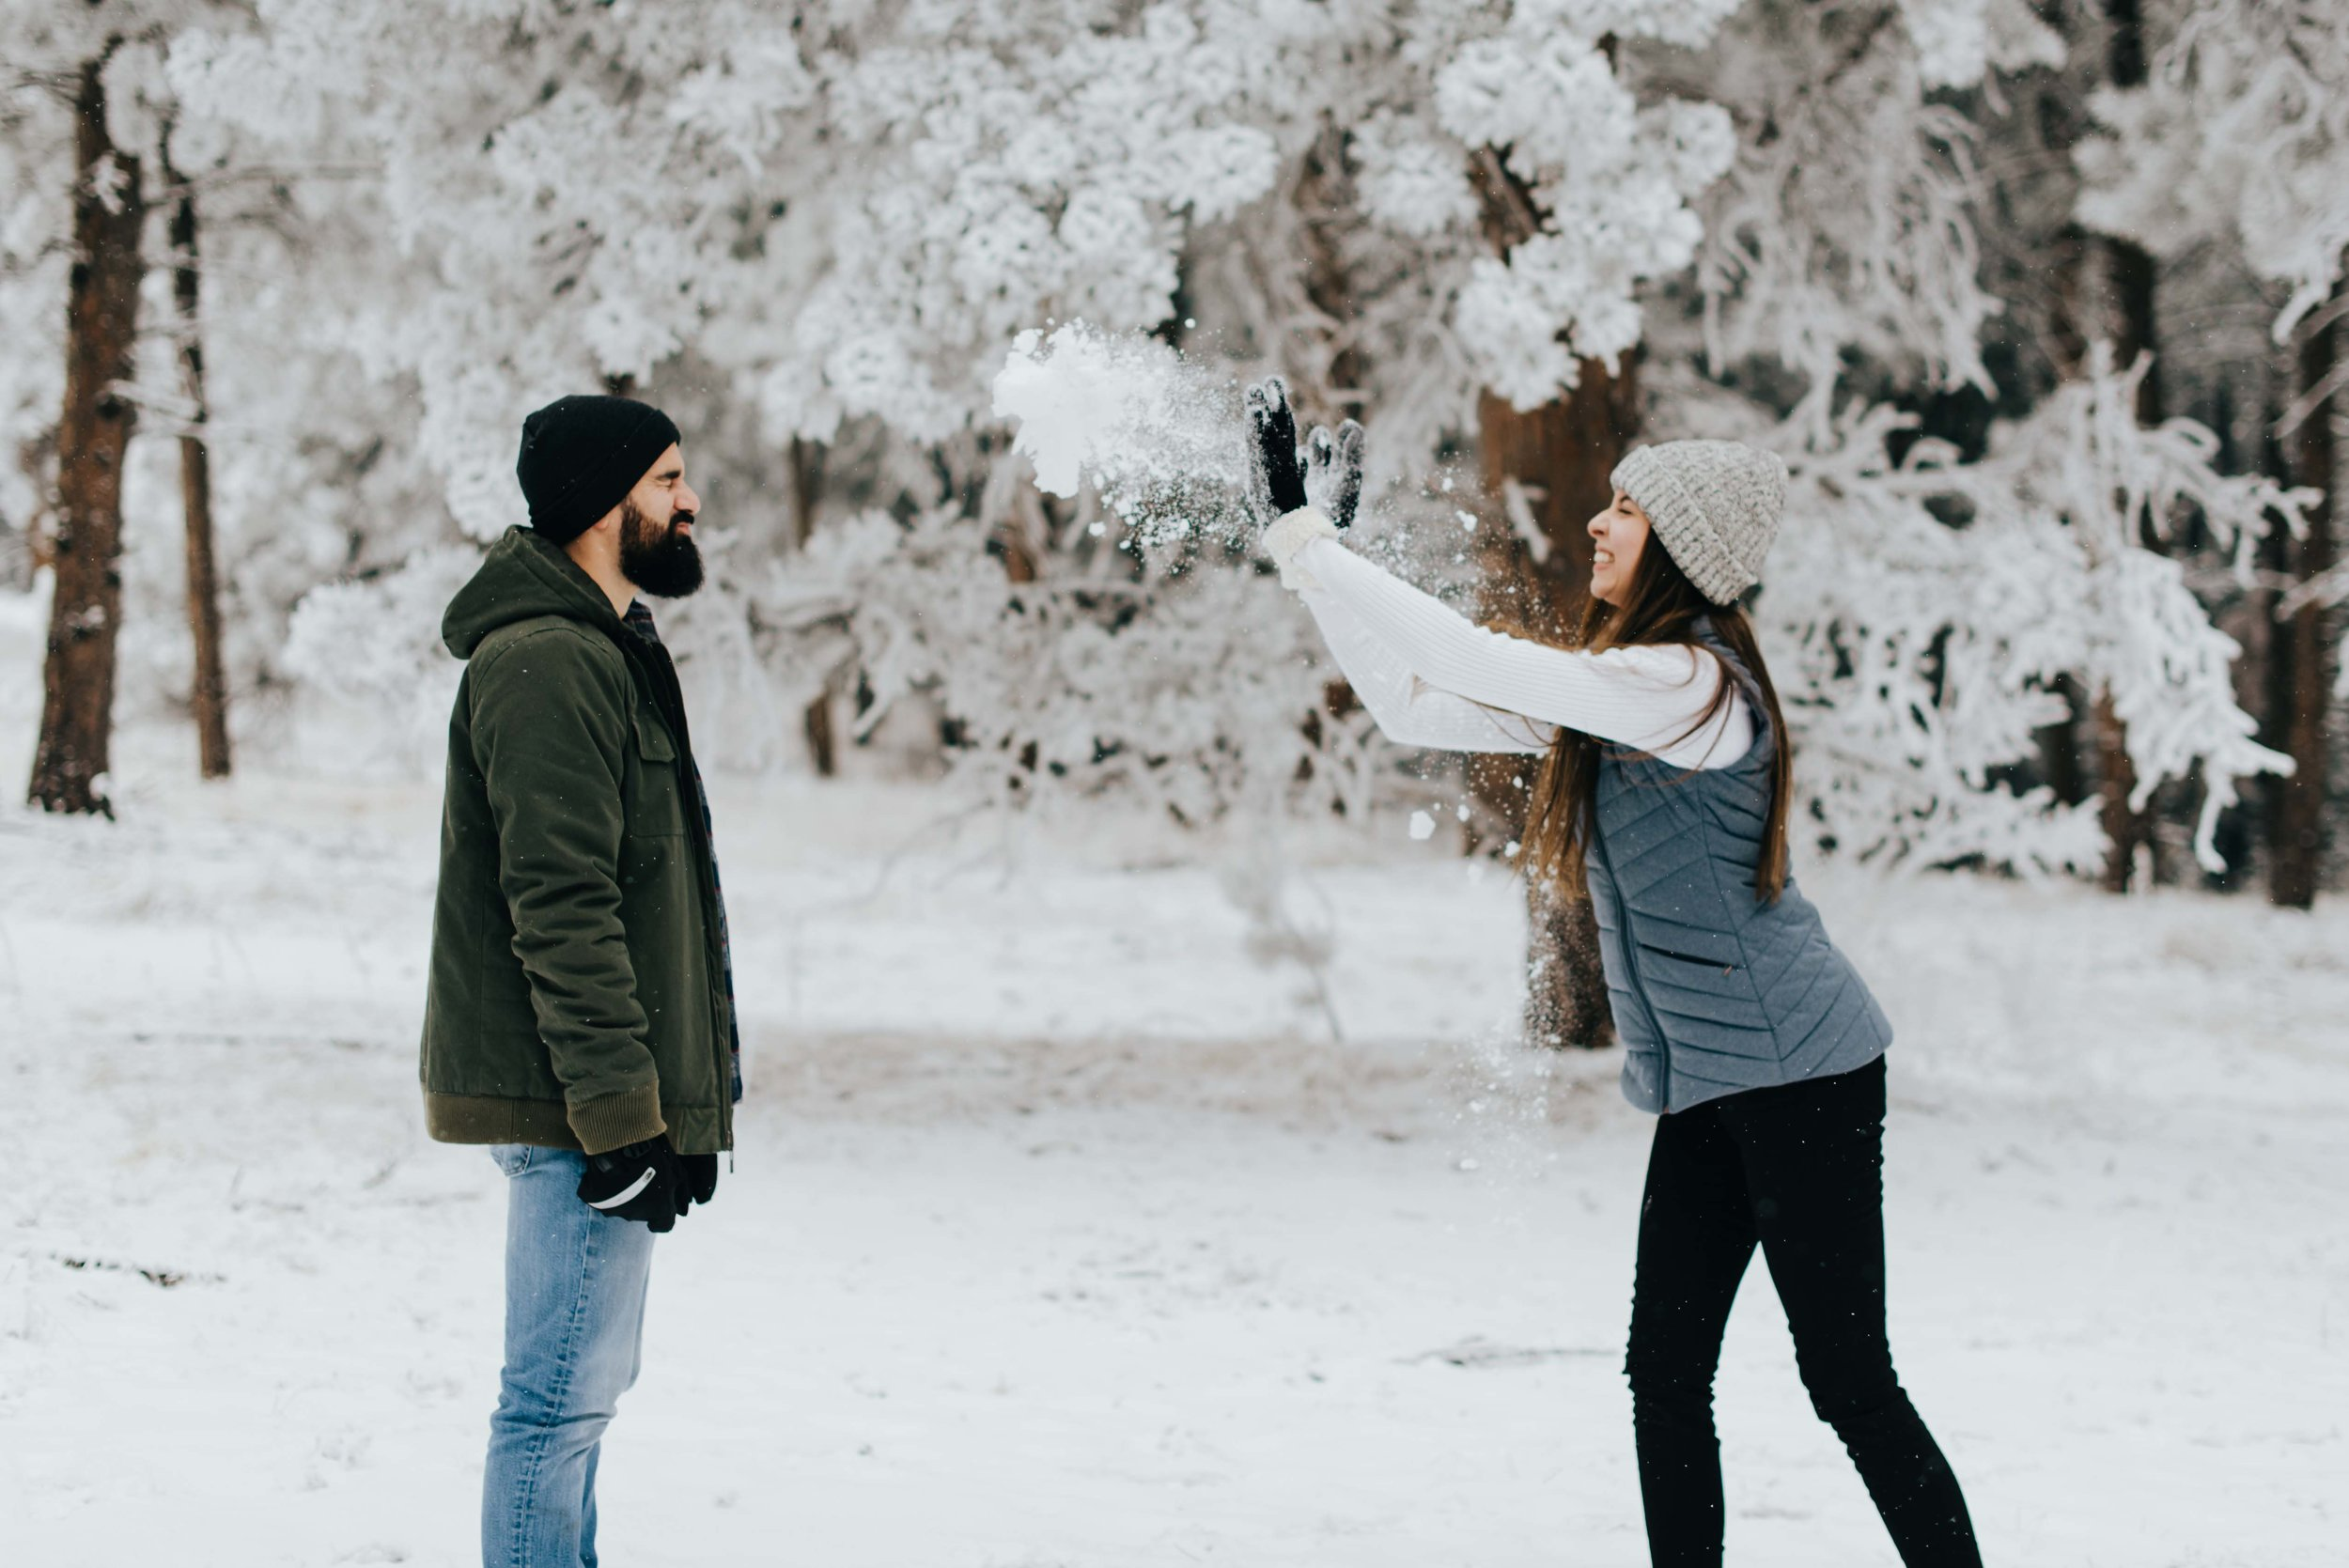 Tani and Nik during their snowball fight. I managed to catch Tani throwing a poor accepting Nik and handful of snow!